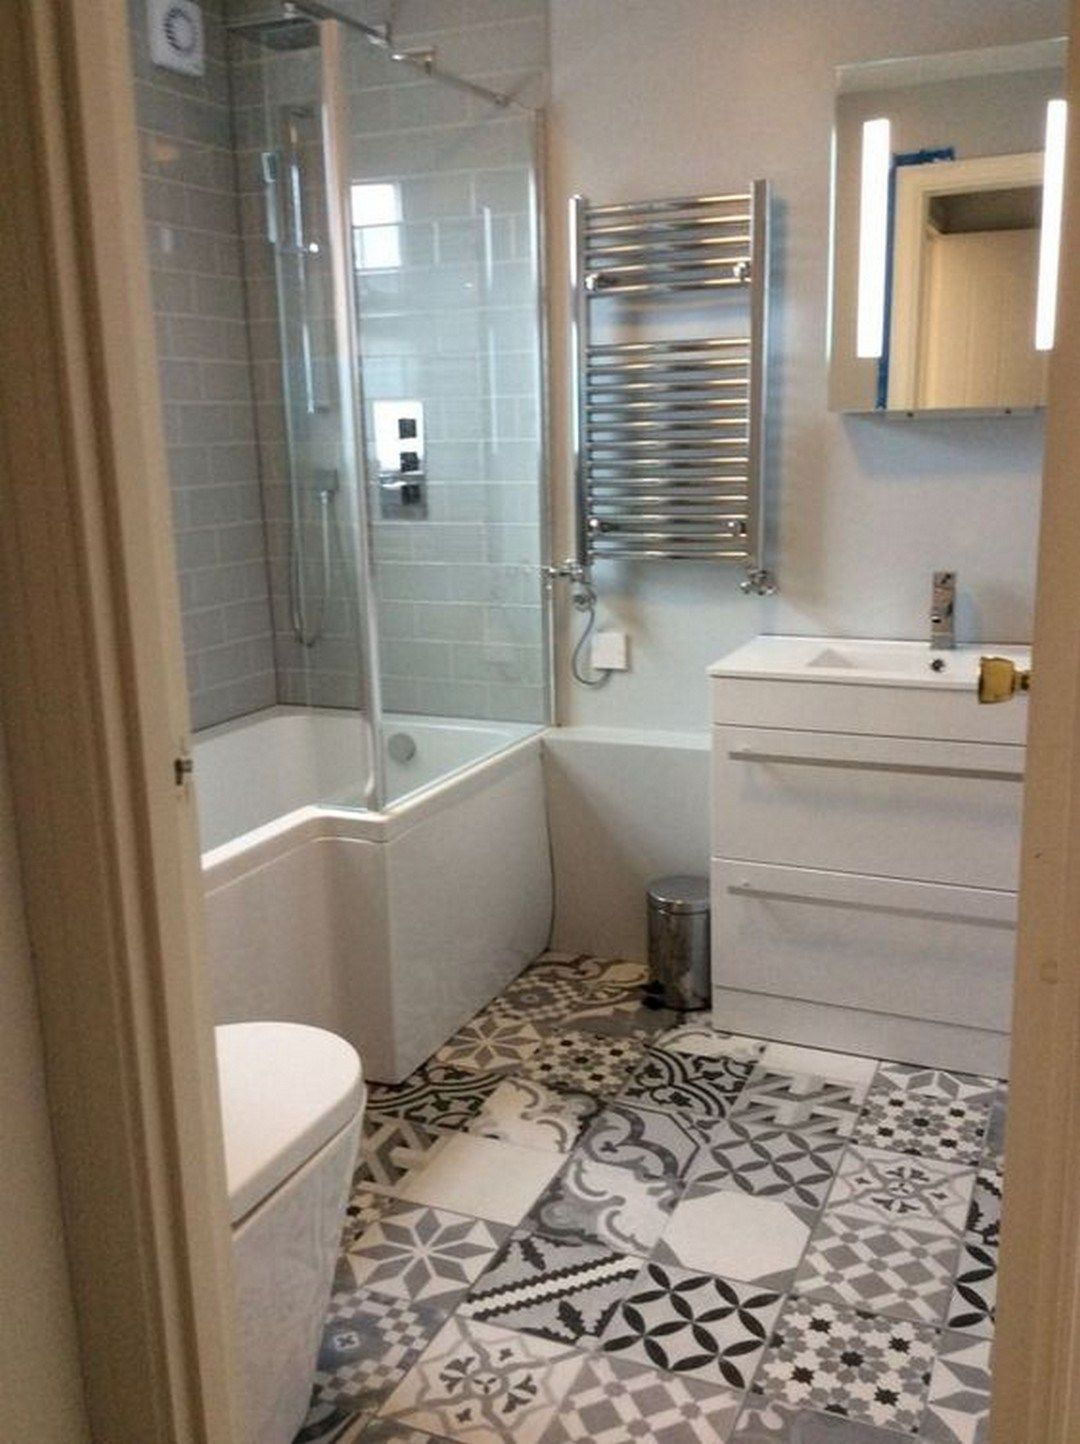 style up your ordinary bathroom with these spanish tile